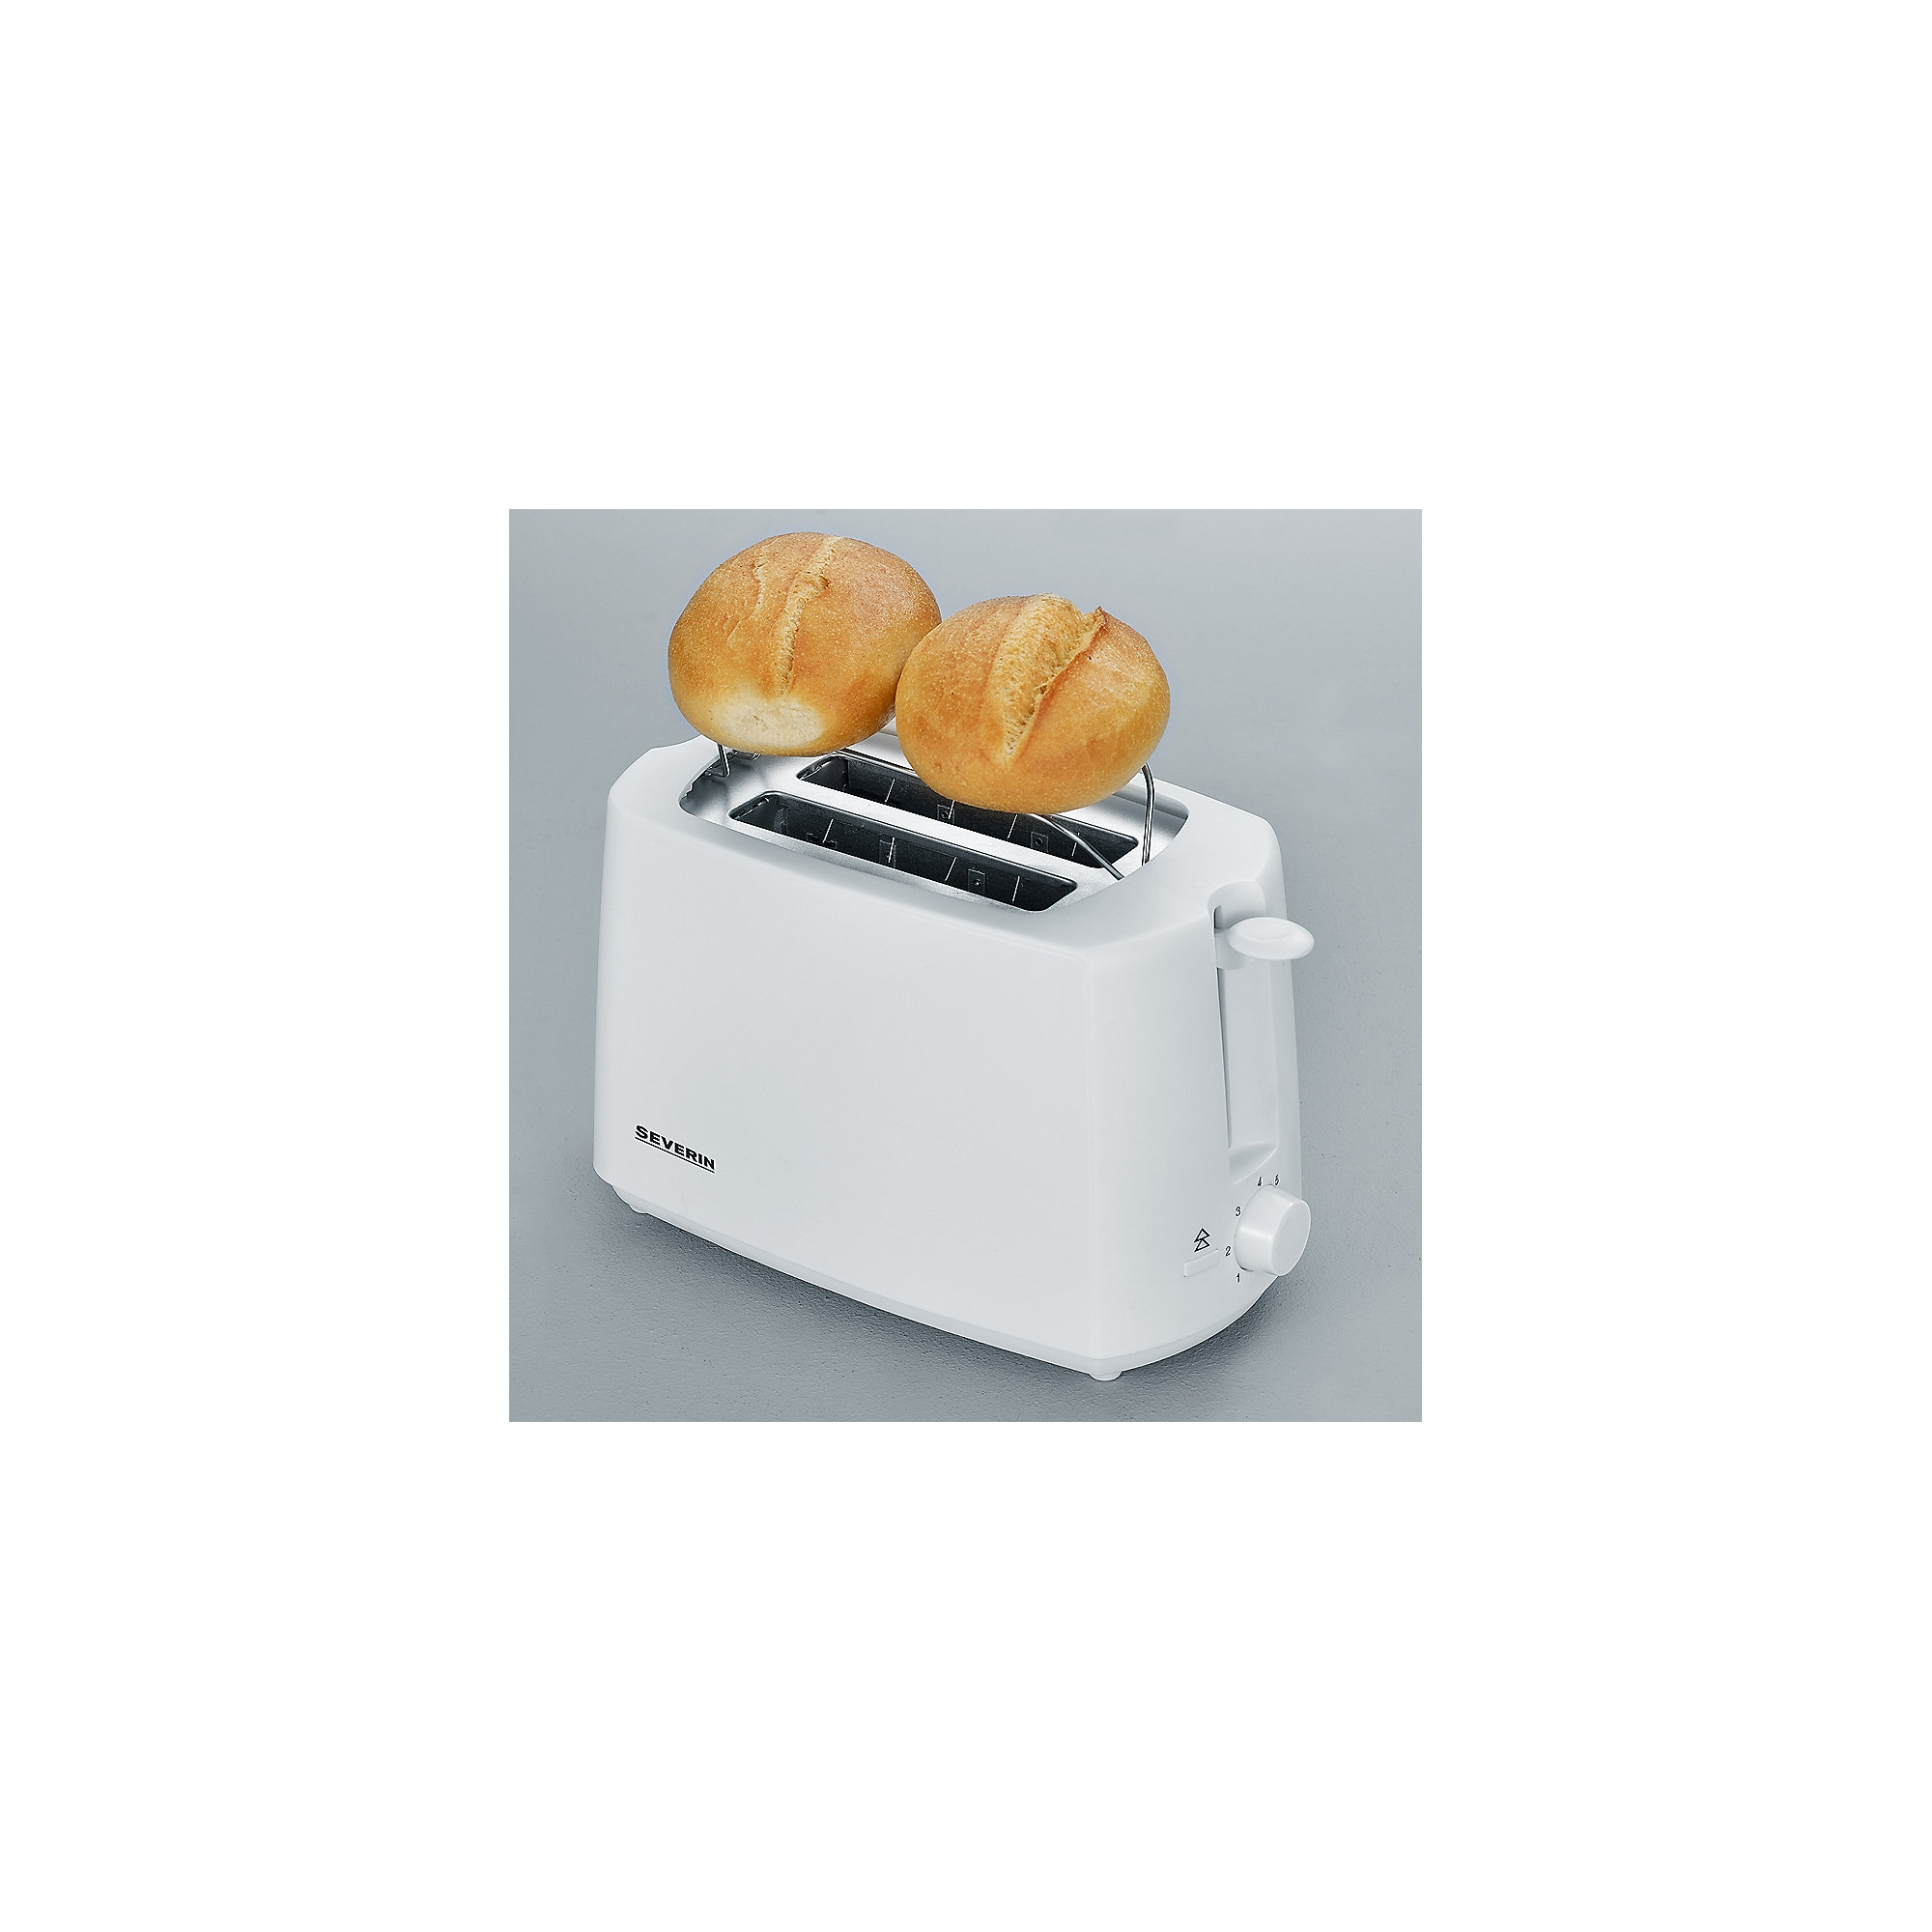 Severin AT 2288 Automatik Toaster weiß